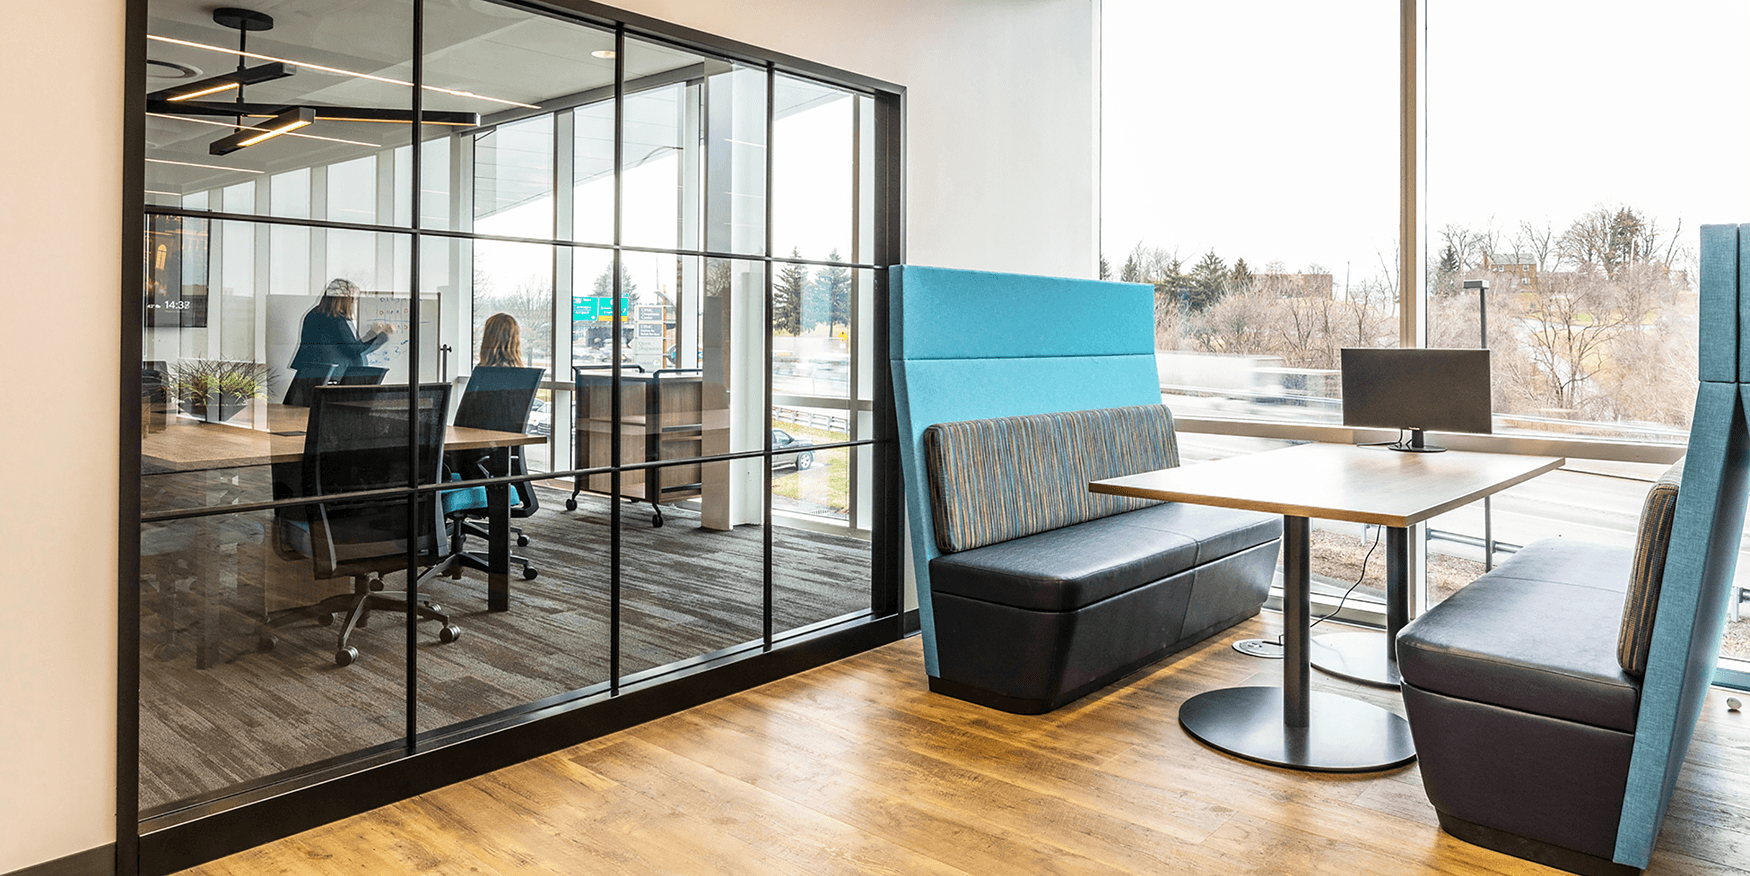 view through a window from a collaborative workspace to a conference room